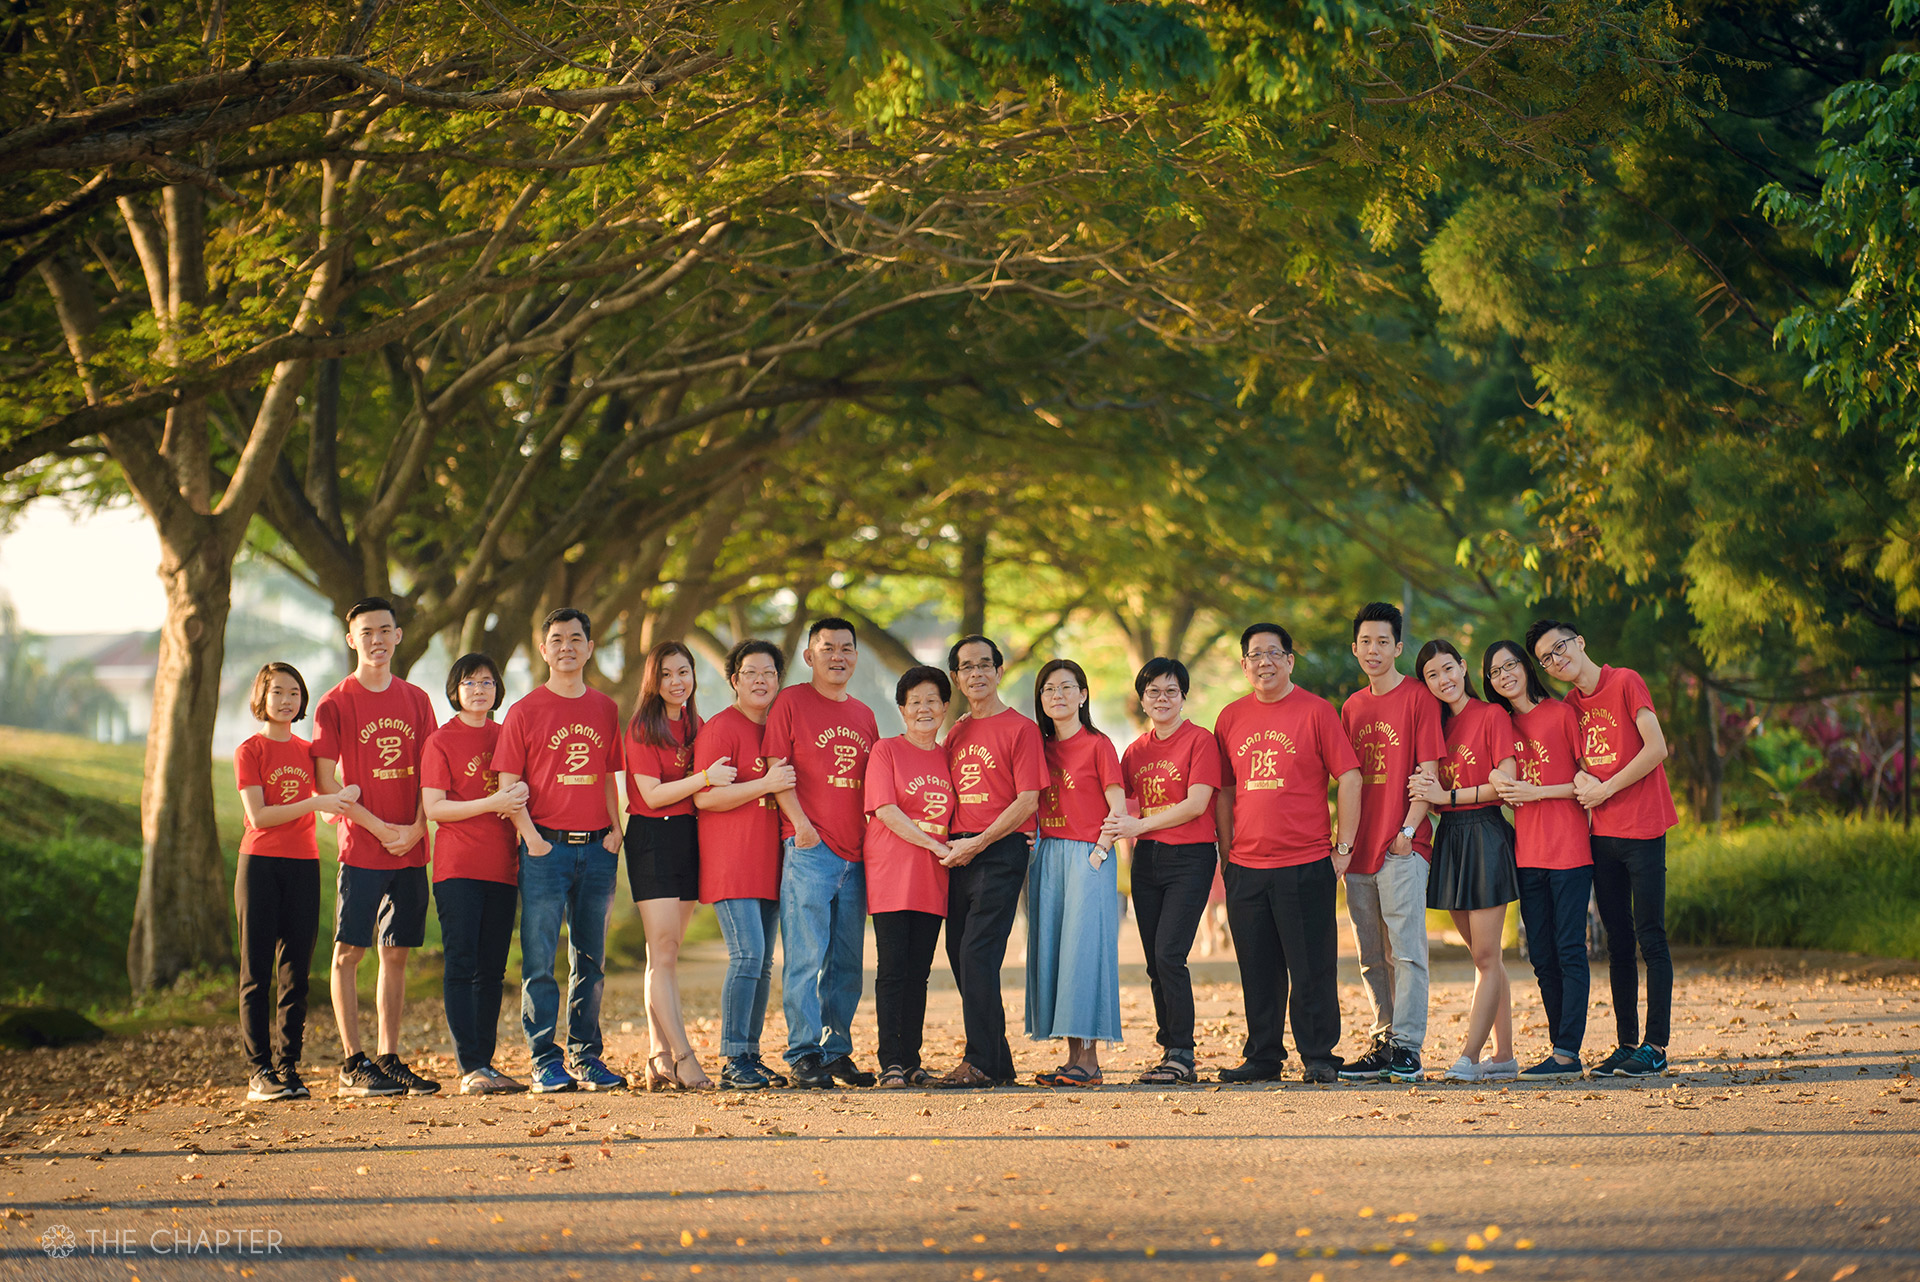 chinese new year family photo ipoh, cny 2020 family portrait ipoh, cny family portrait ipoh malaysia, cny family photo ipoh, the chapter ipoh